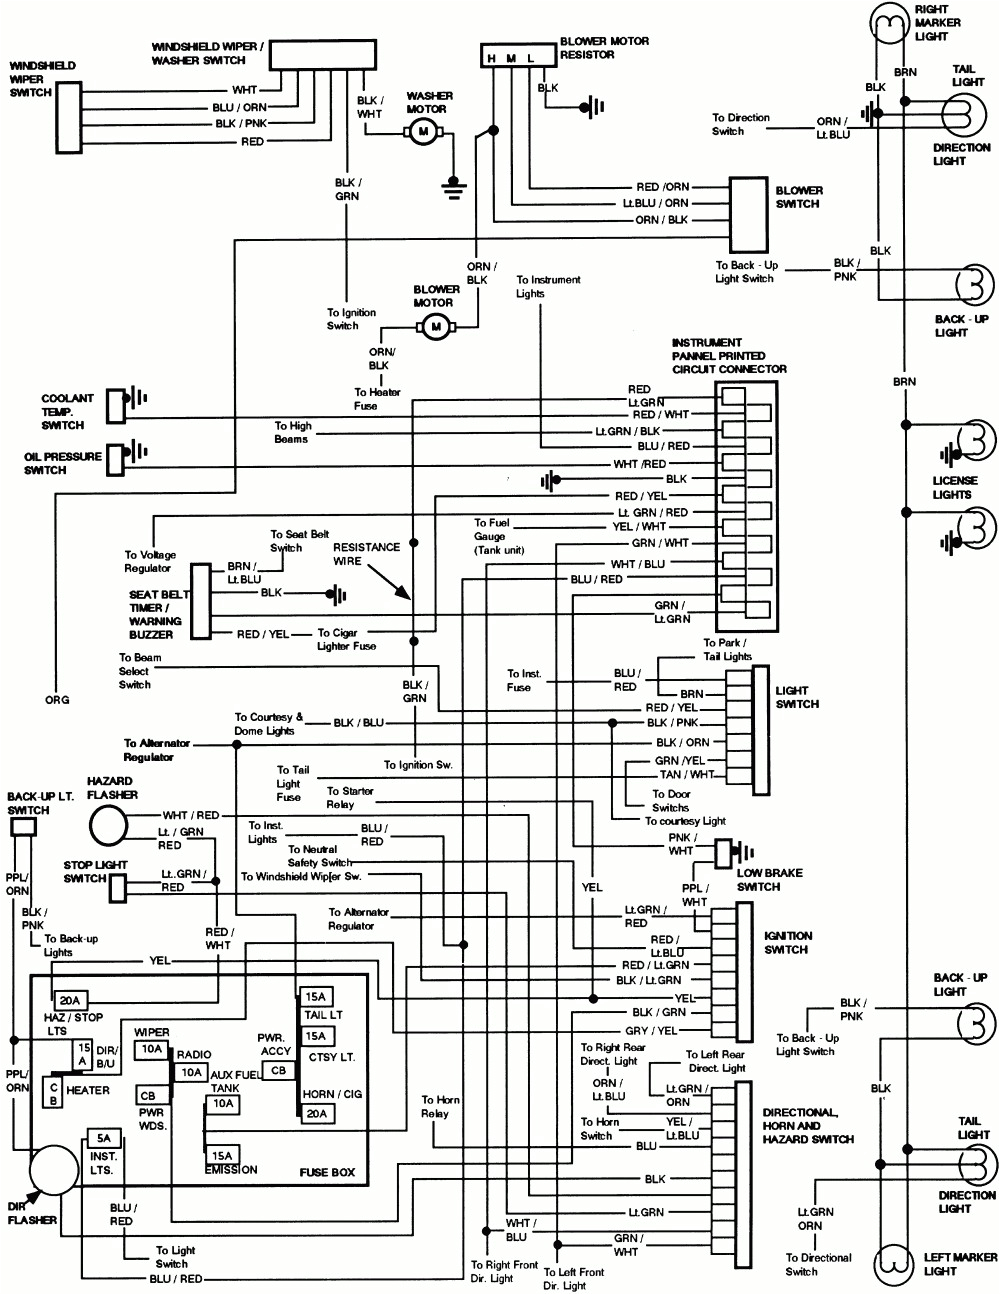 1990 ford f150 starter solenoid wiring diagram awesome 86 ford engine diagram wiring diagrams schematics of 1990 ford f150 starter solenoid wiring diagram jpg